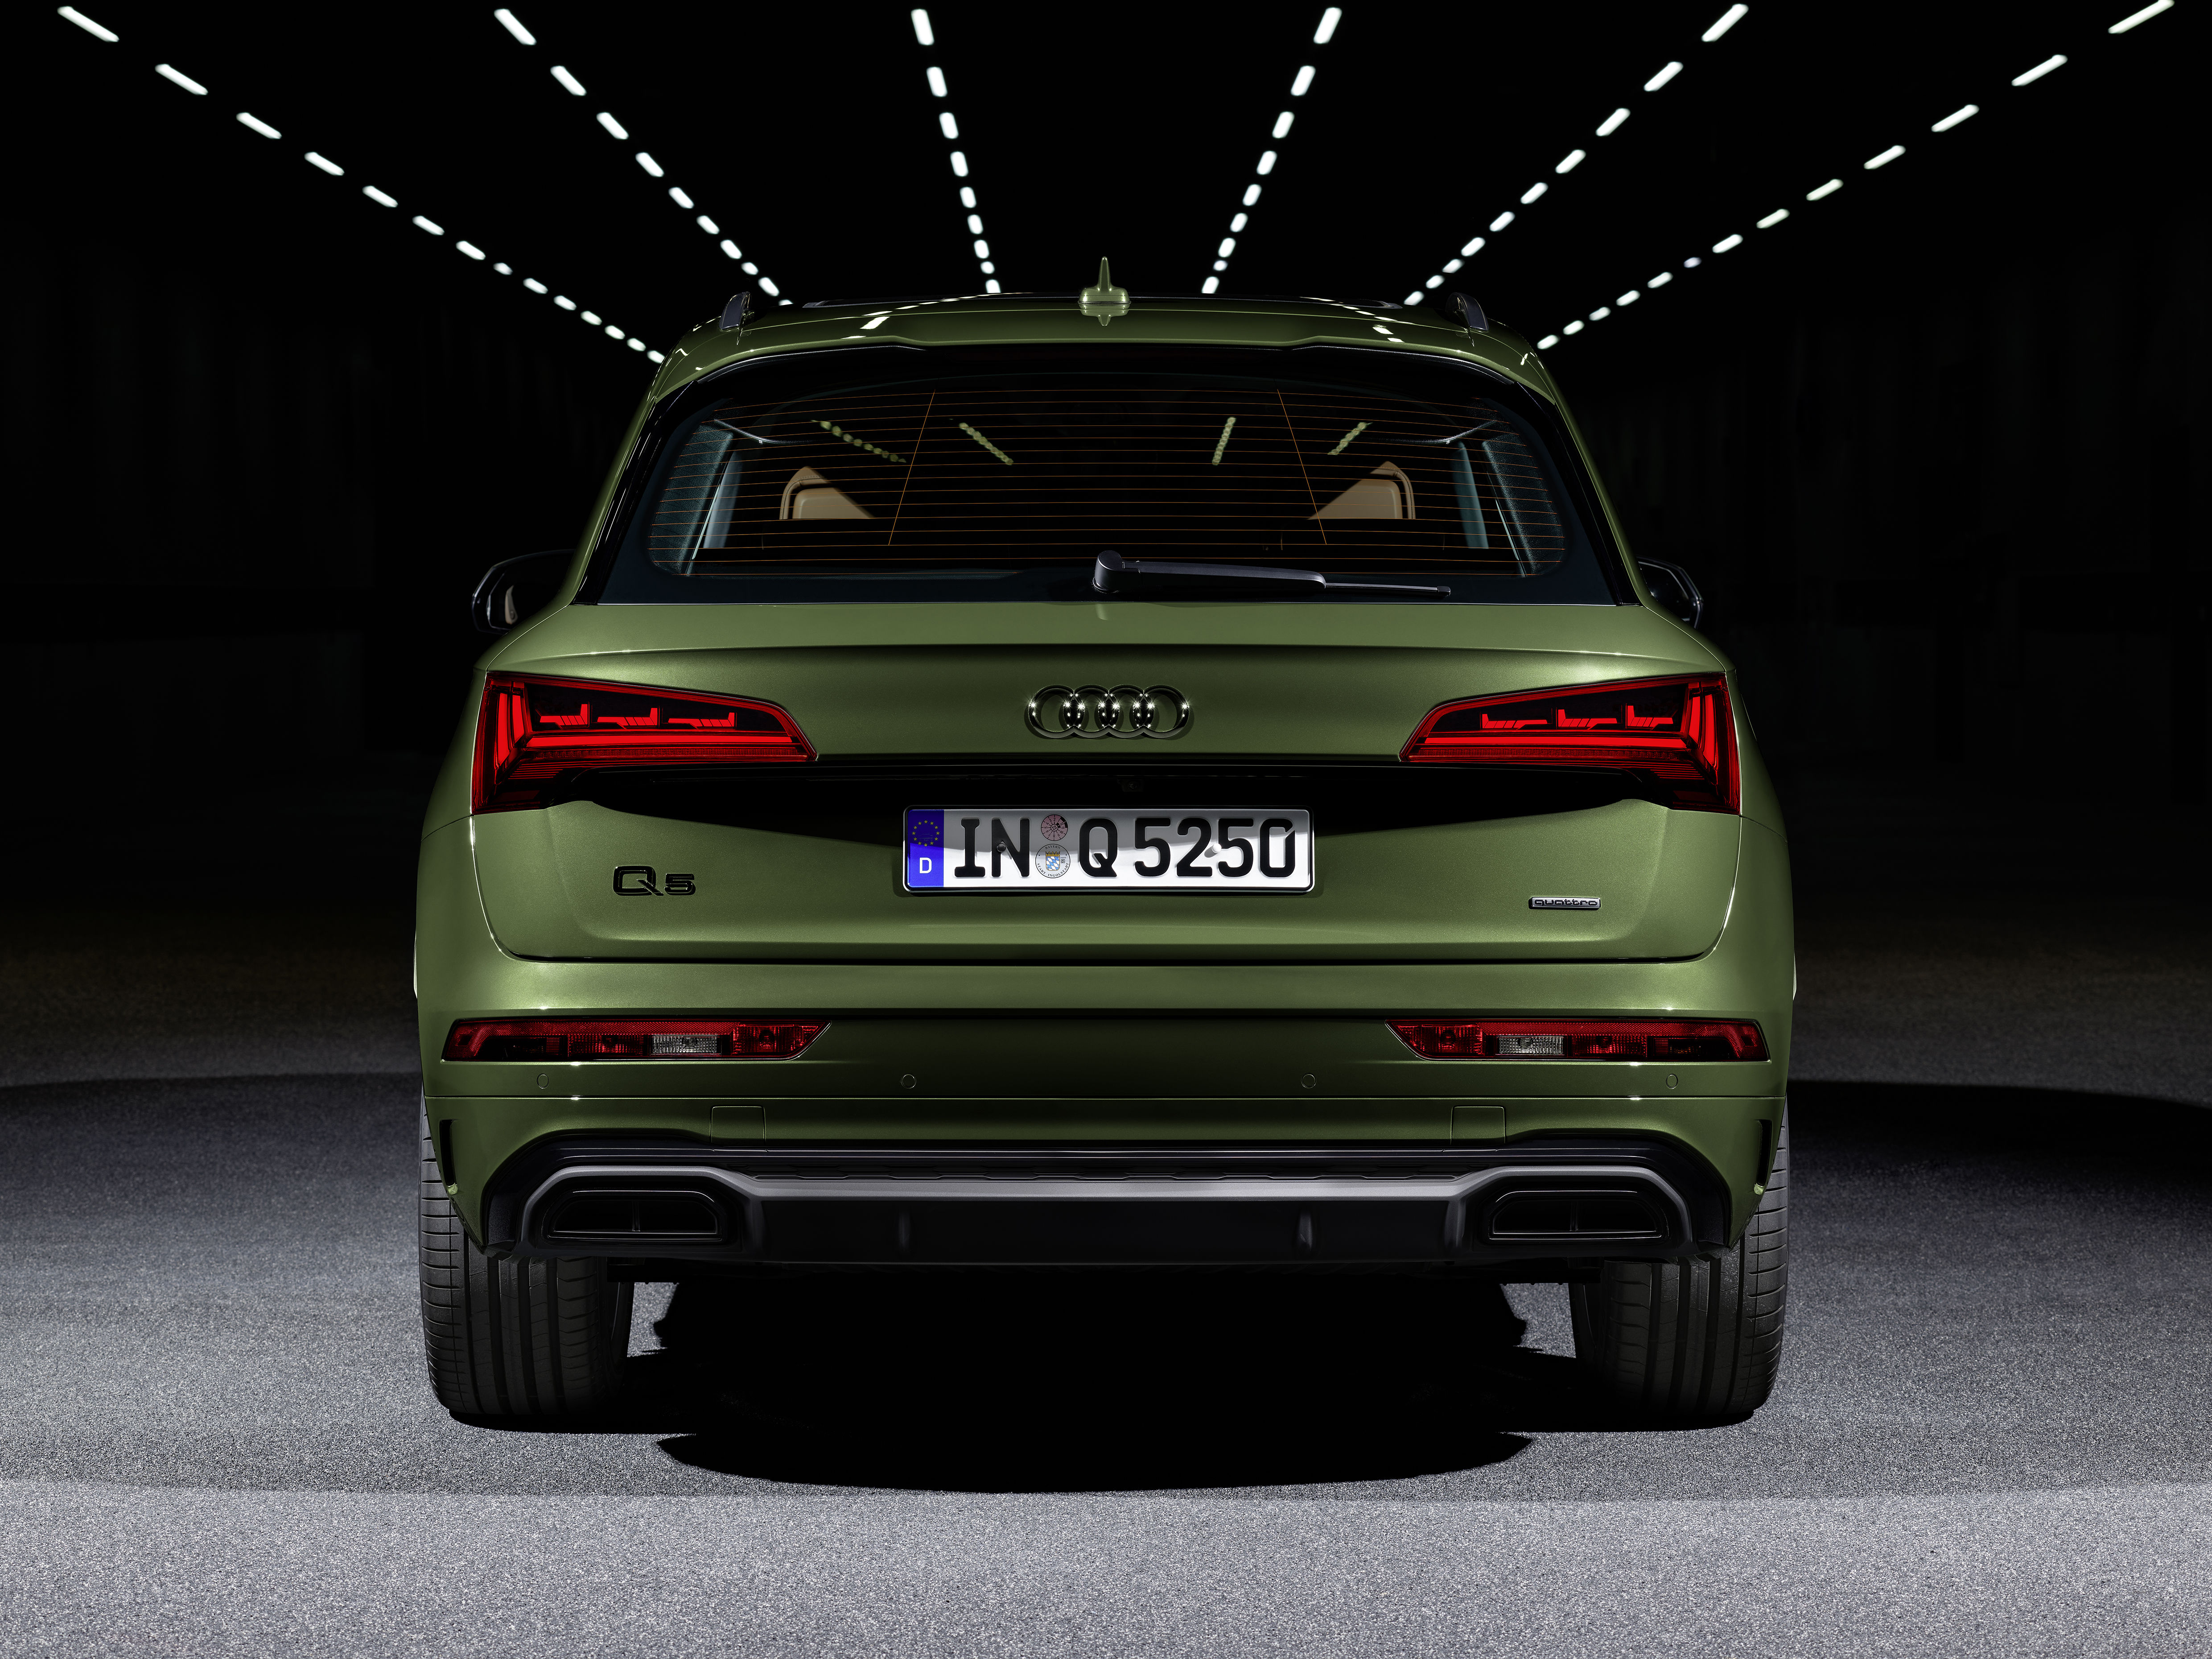 Over the rear, a new trim element between the light clusters and a new diffusor insert with a horizontal fin seeks to give the vehicle a distinctive appeal.